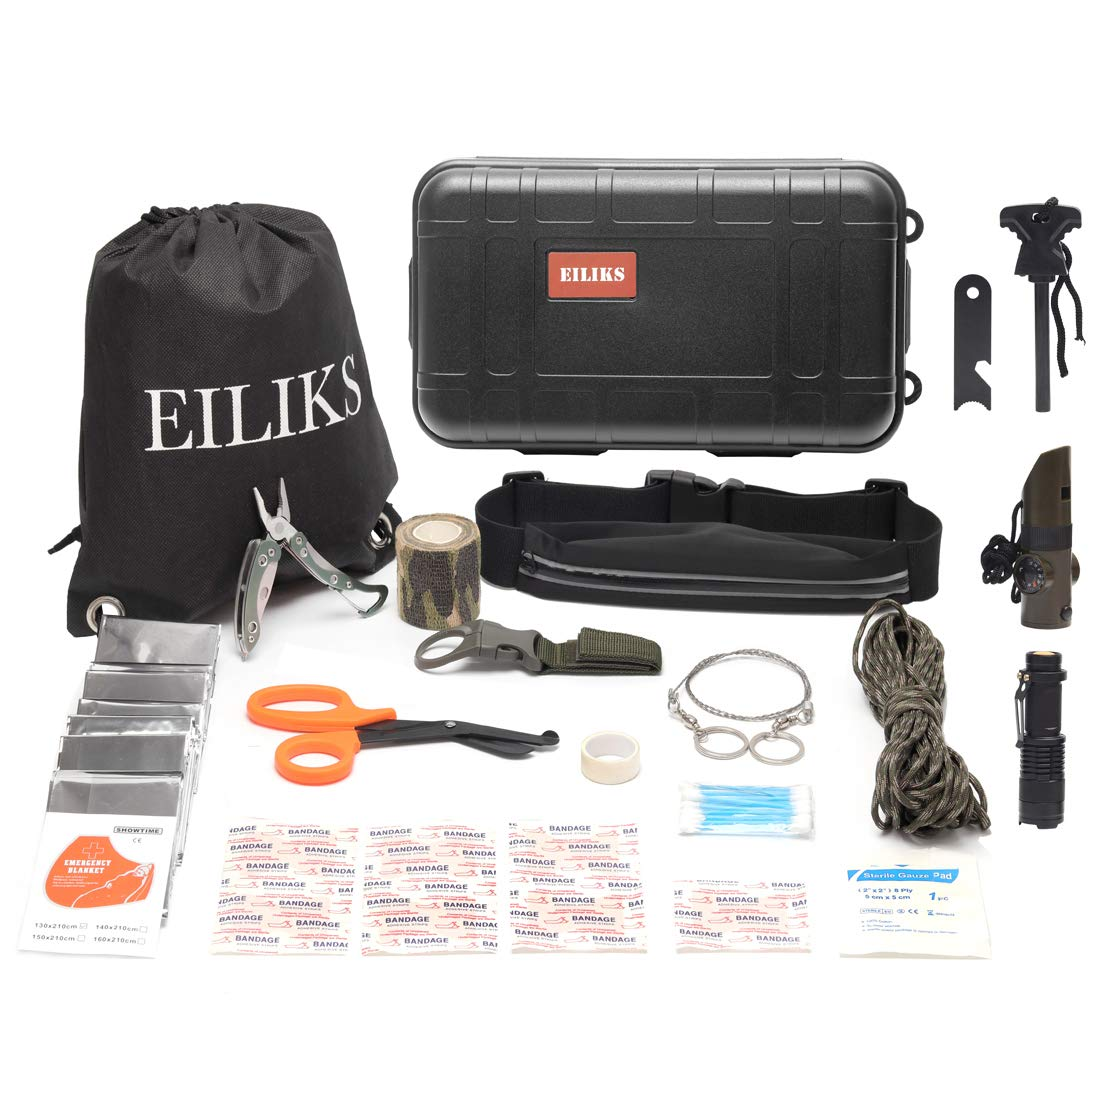 EILIKS First Aid Survival Kit Outdoor Emergency Kit 47 in 1 Earthquake Survival kit Trauma Bag Car Home Work Office Boat Camping Hiking Travel Adventures by EILIKS